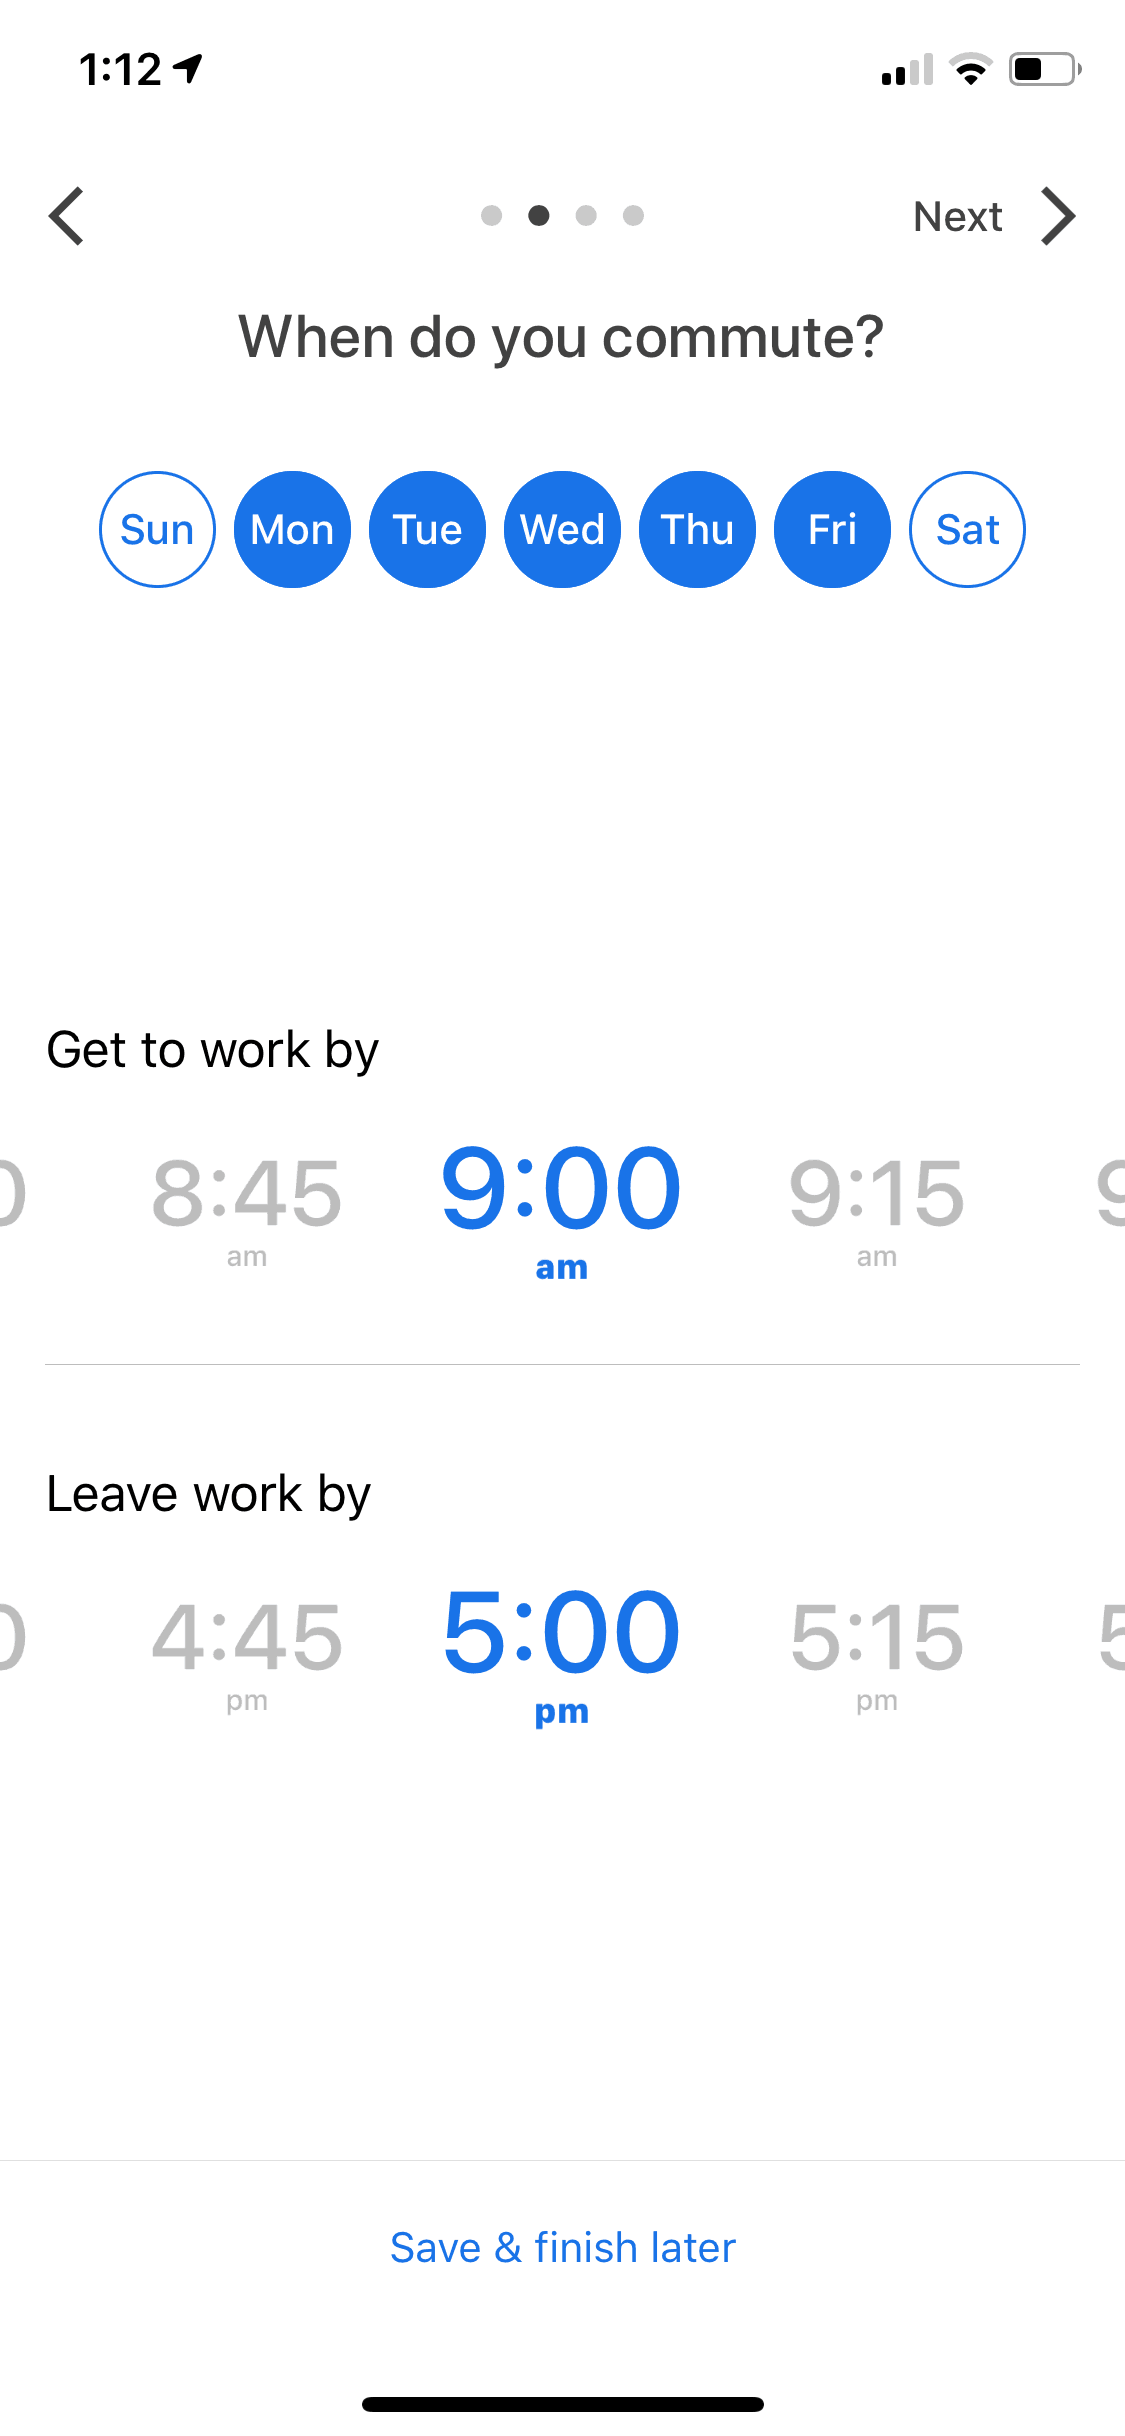 Time Picker by Google Maps on iOS